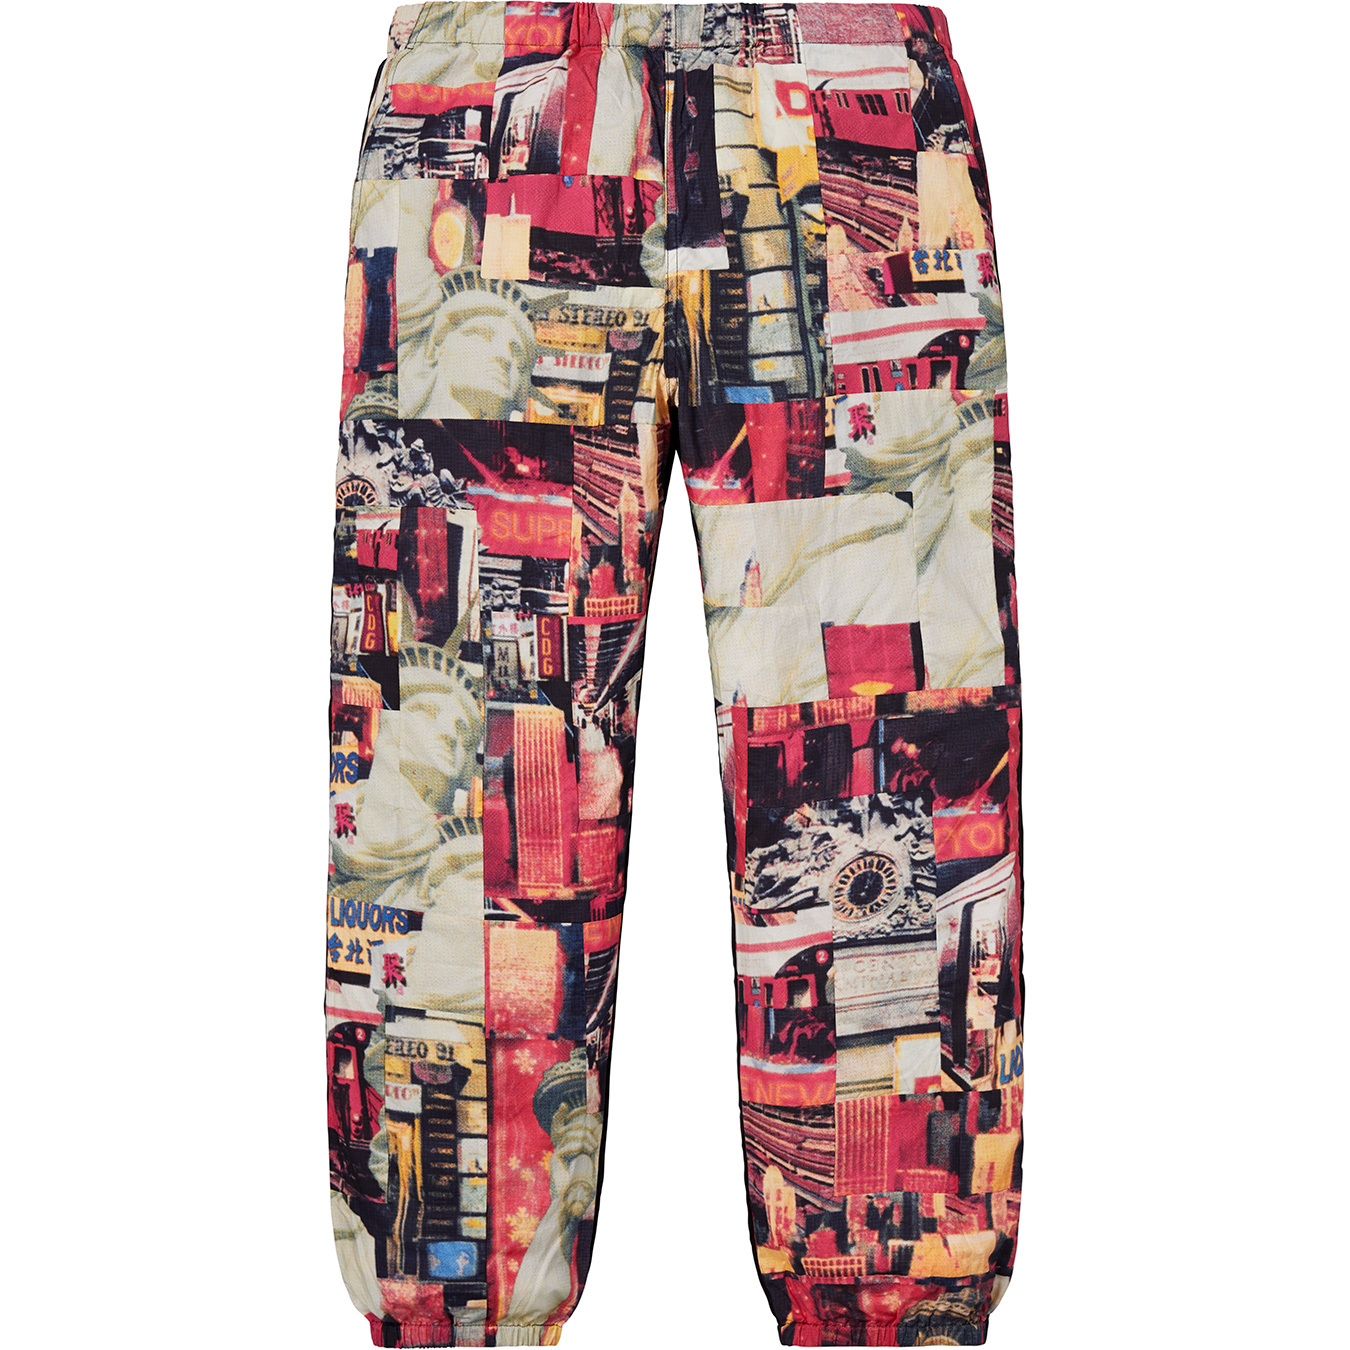 supreme-comme-des-garcons-shirt-cotton-patchwork-skate-pant-18aw-collaboration-release-20180915-week4